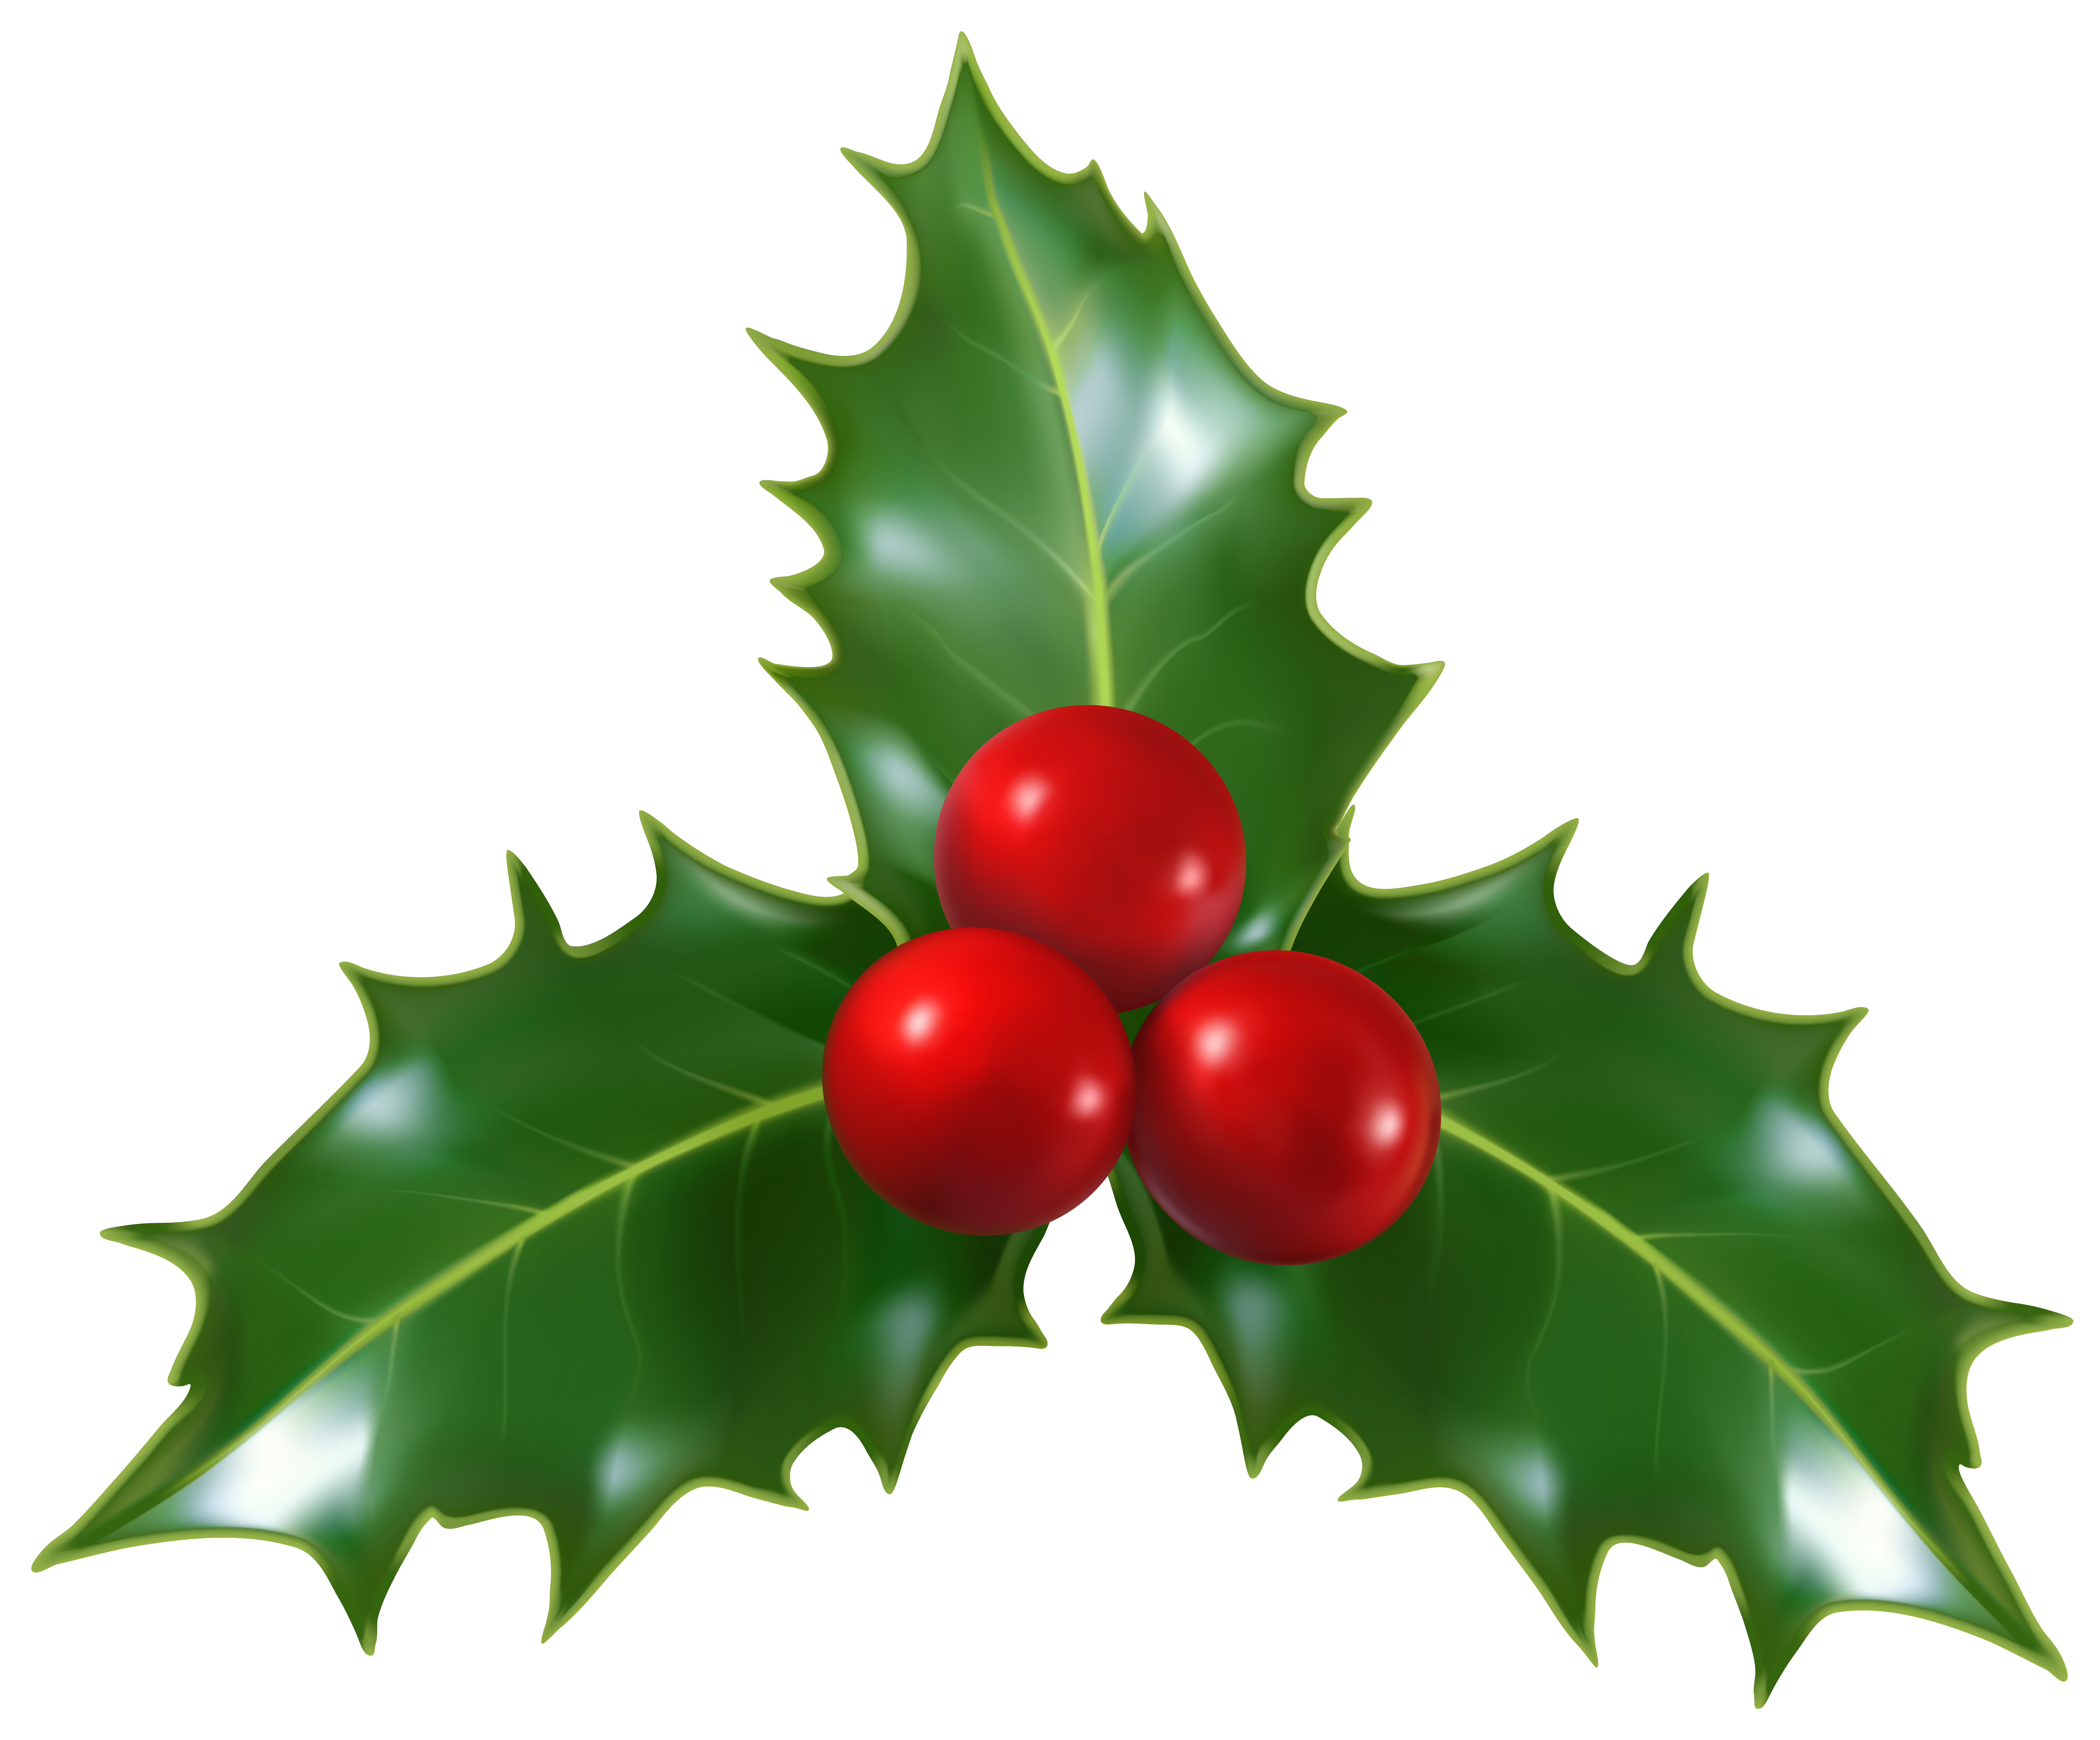 6313x5231 Christmas Holly Mistletoe Png Clip Art Imageu200b Gallery